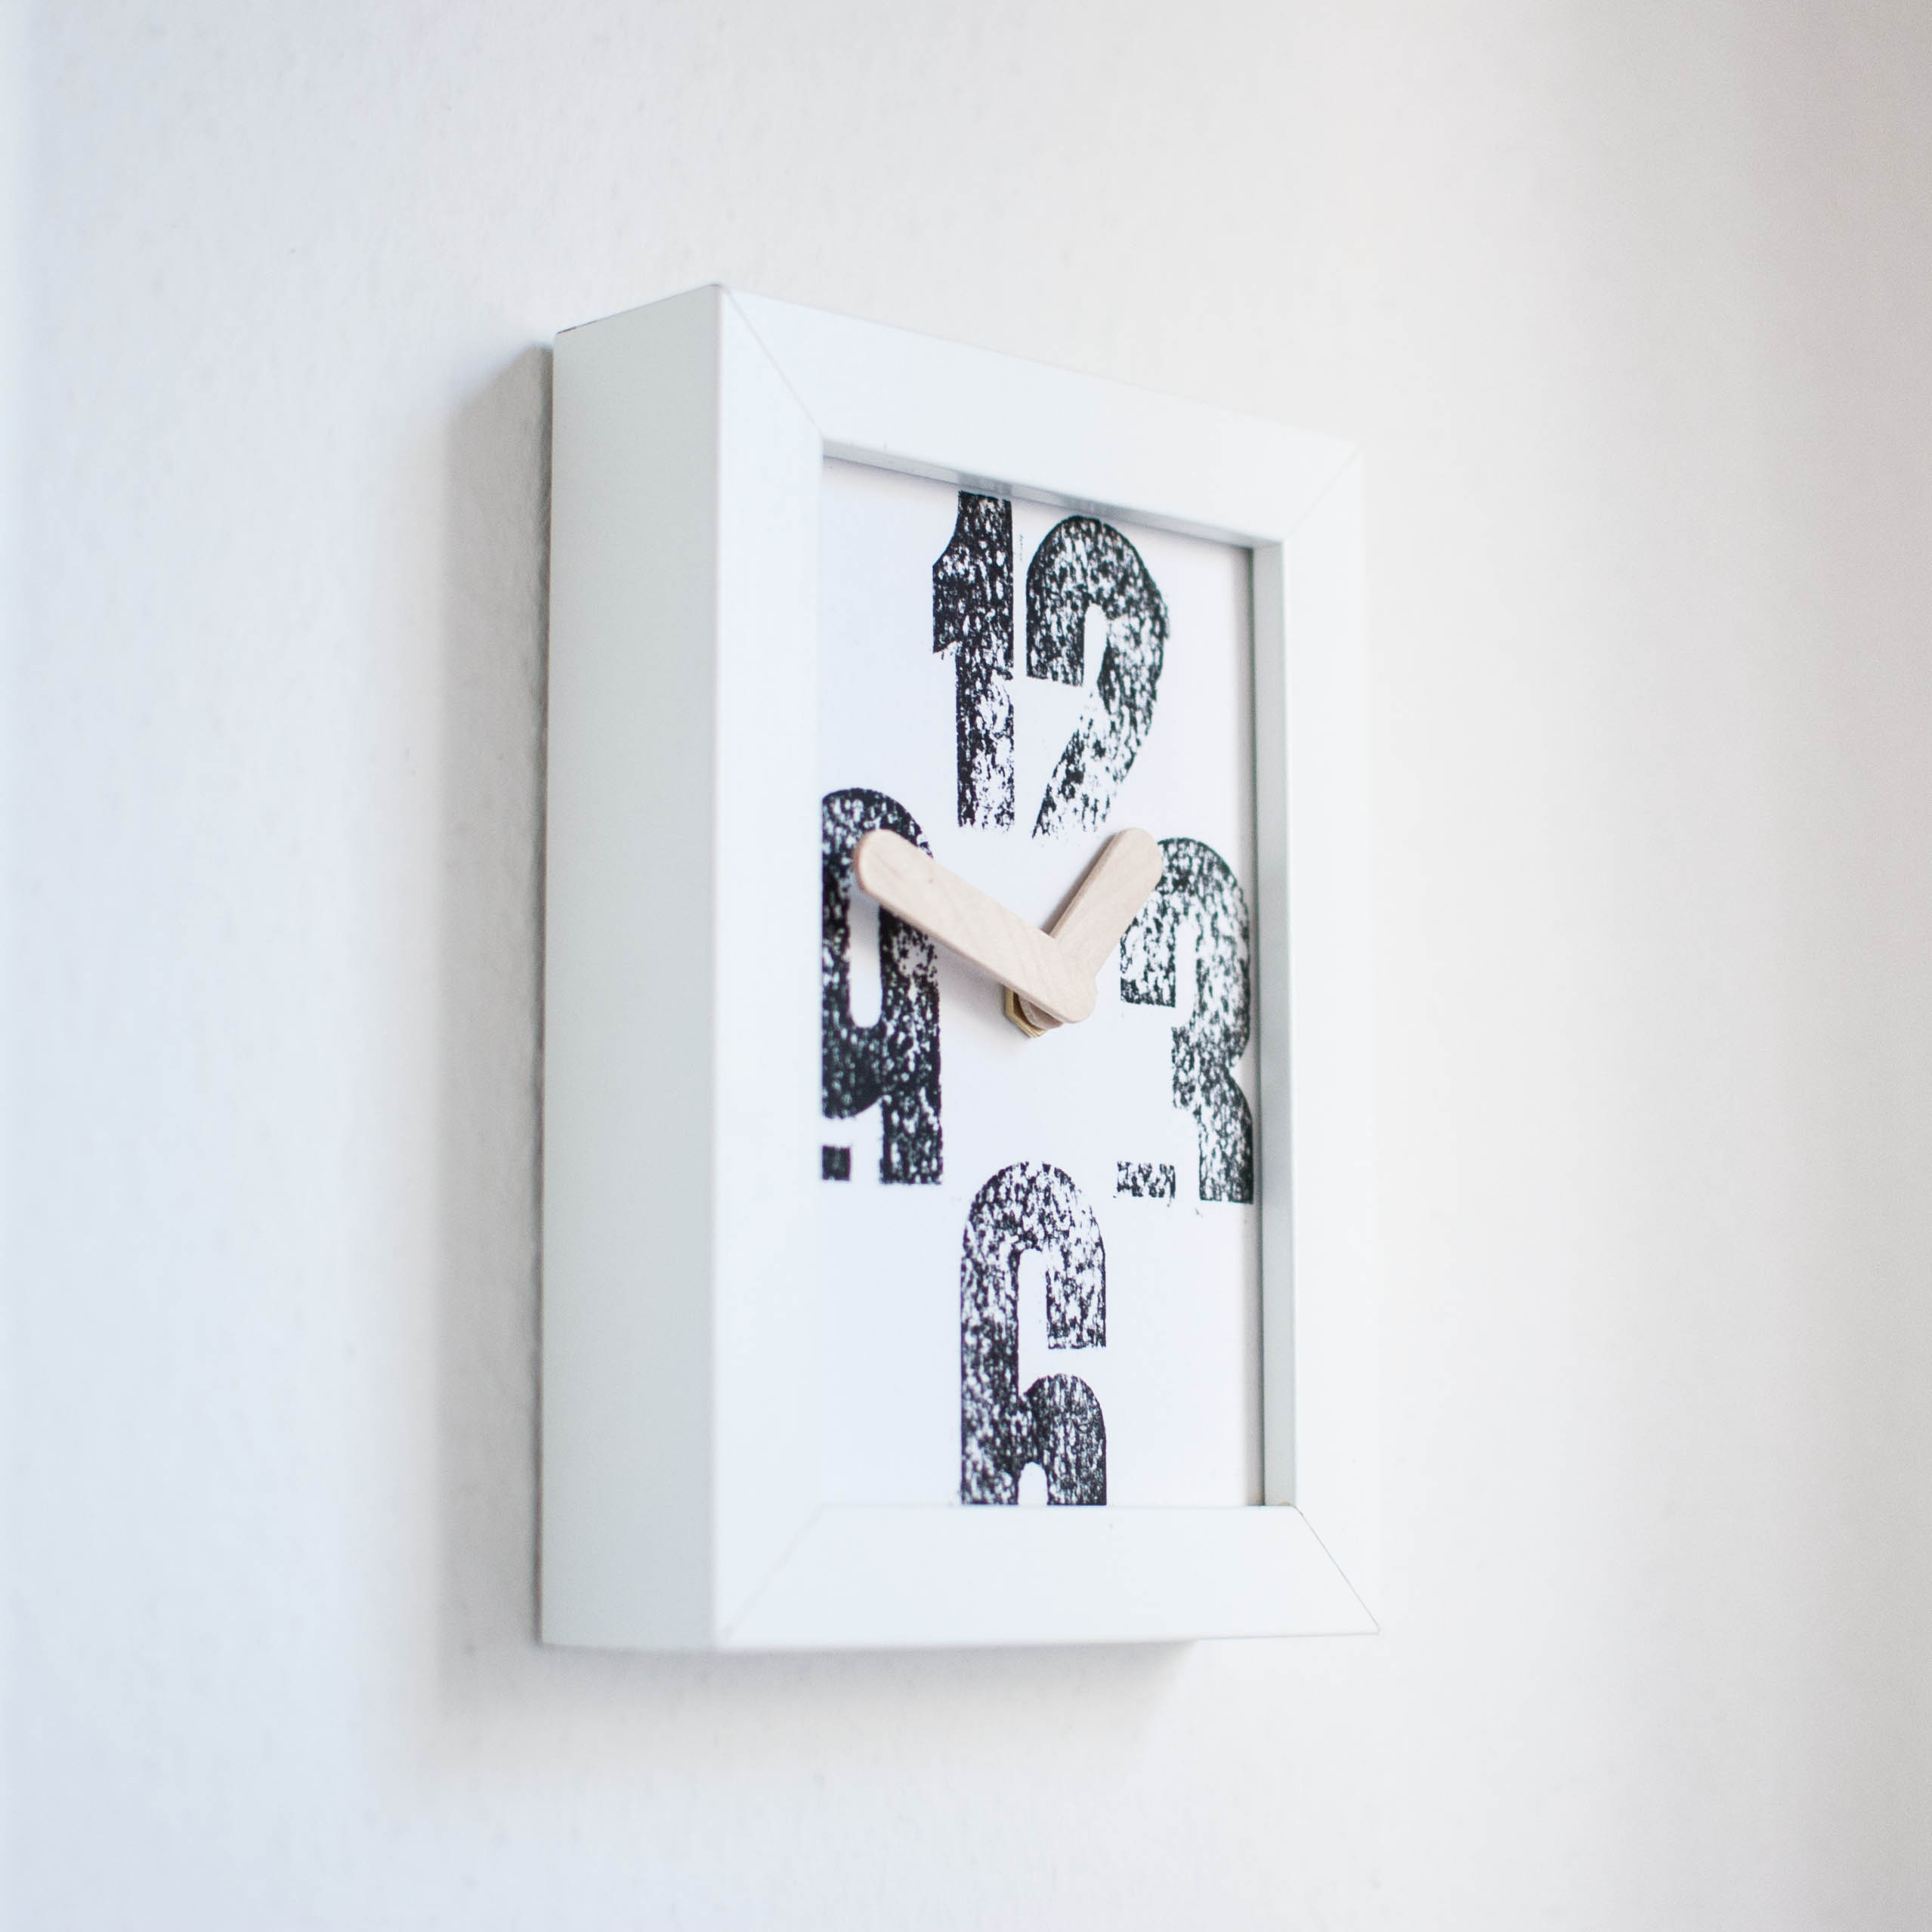 Rustic letterpress design clock handmade for Home decor and furniture